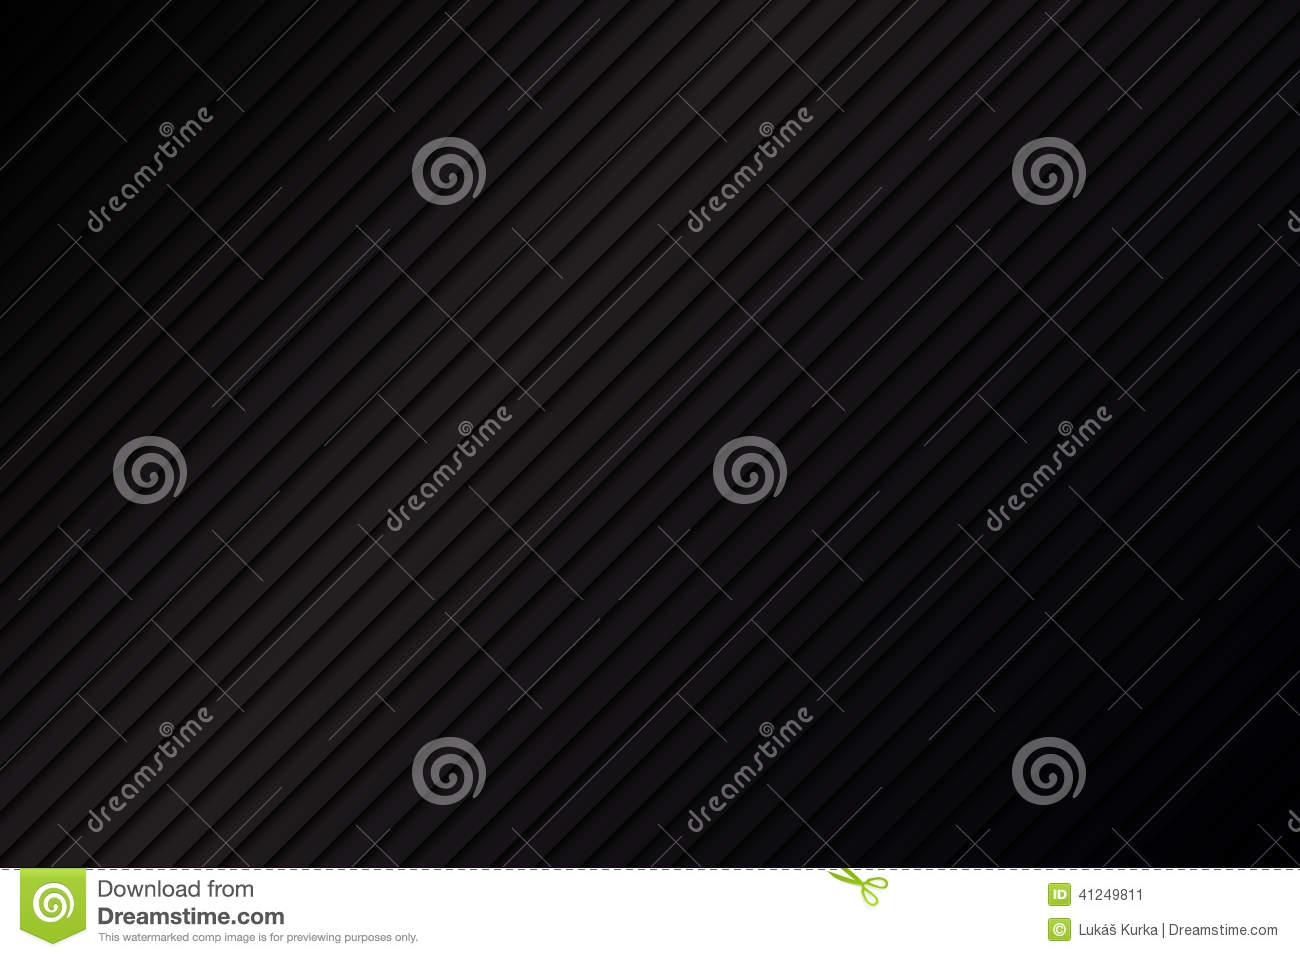 Black metallic abstract background